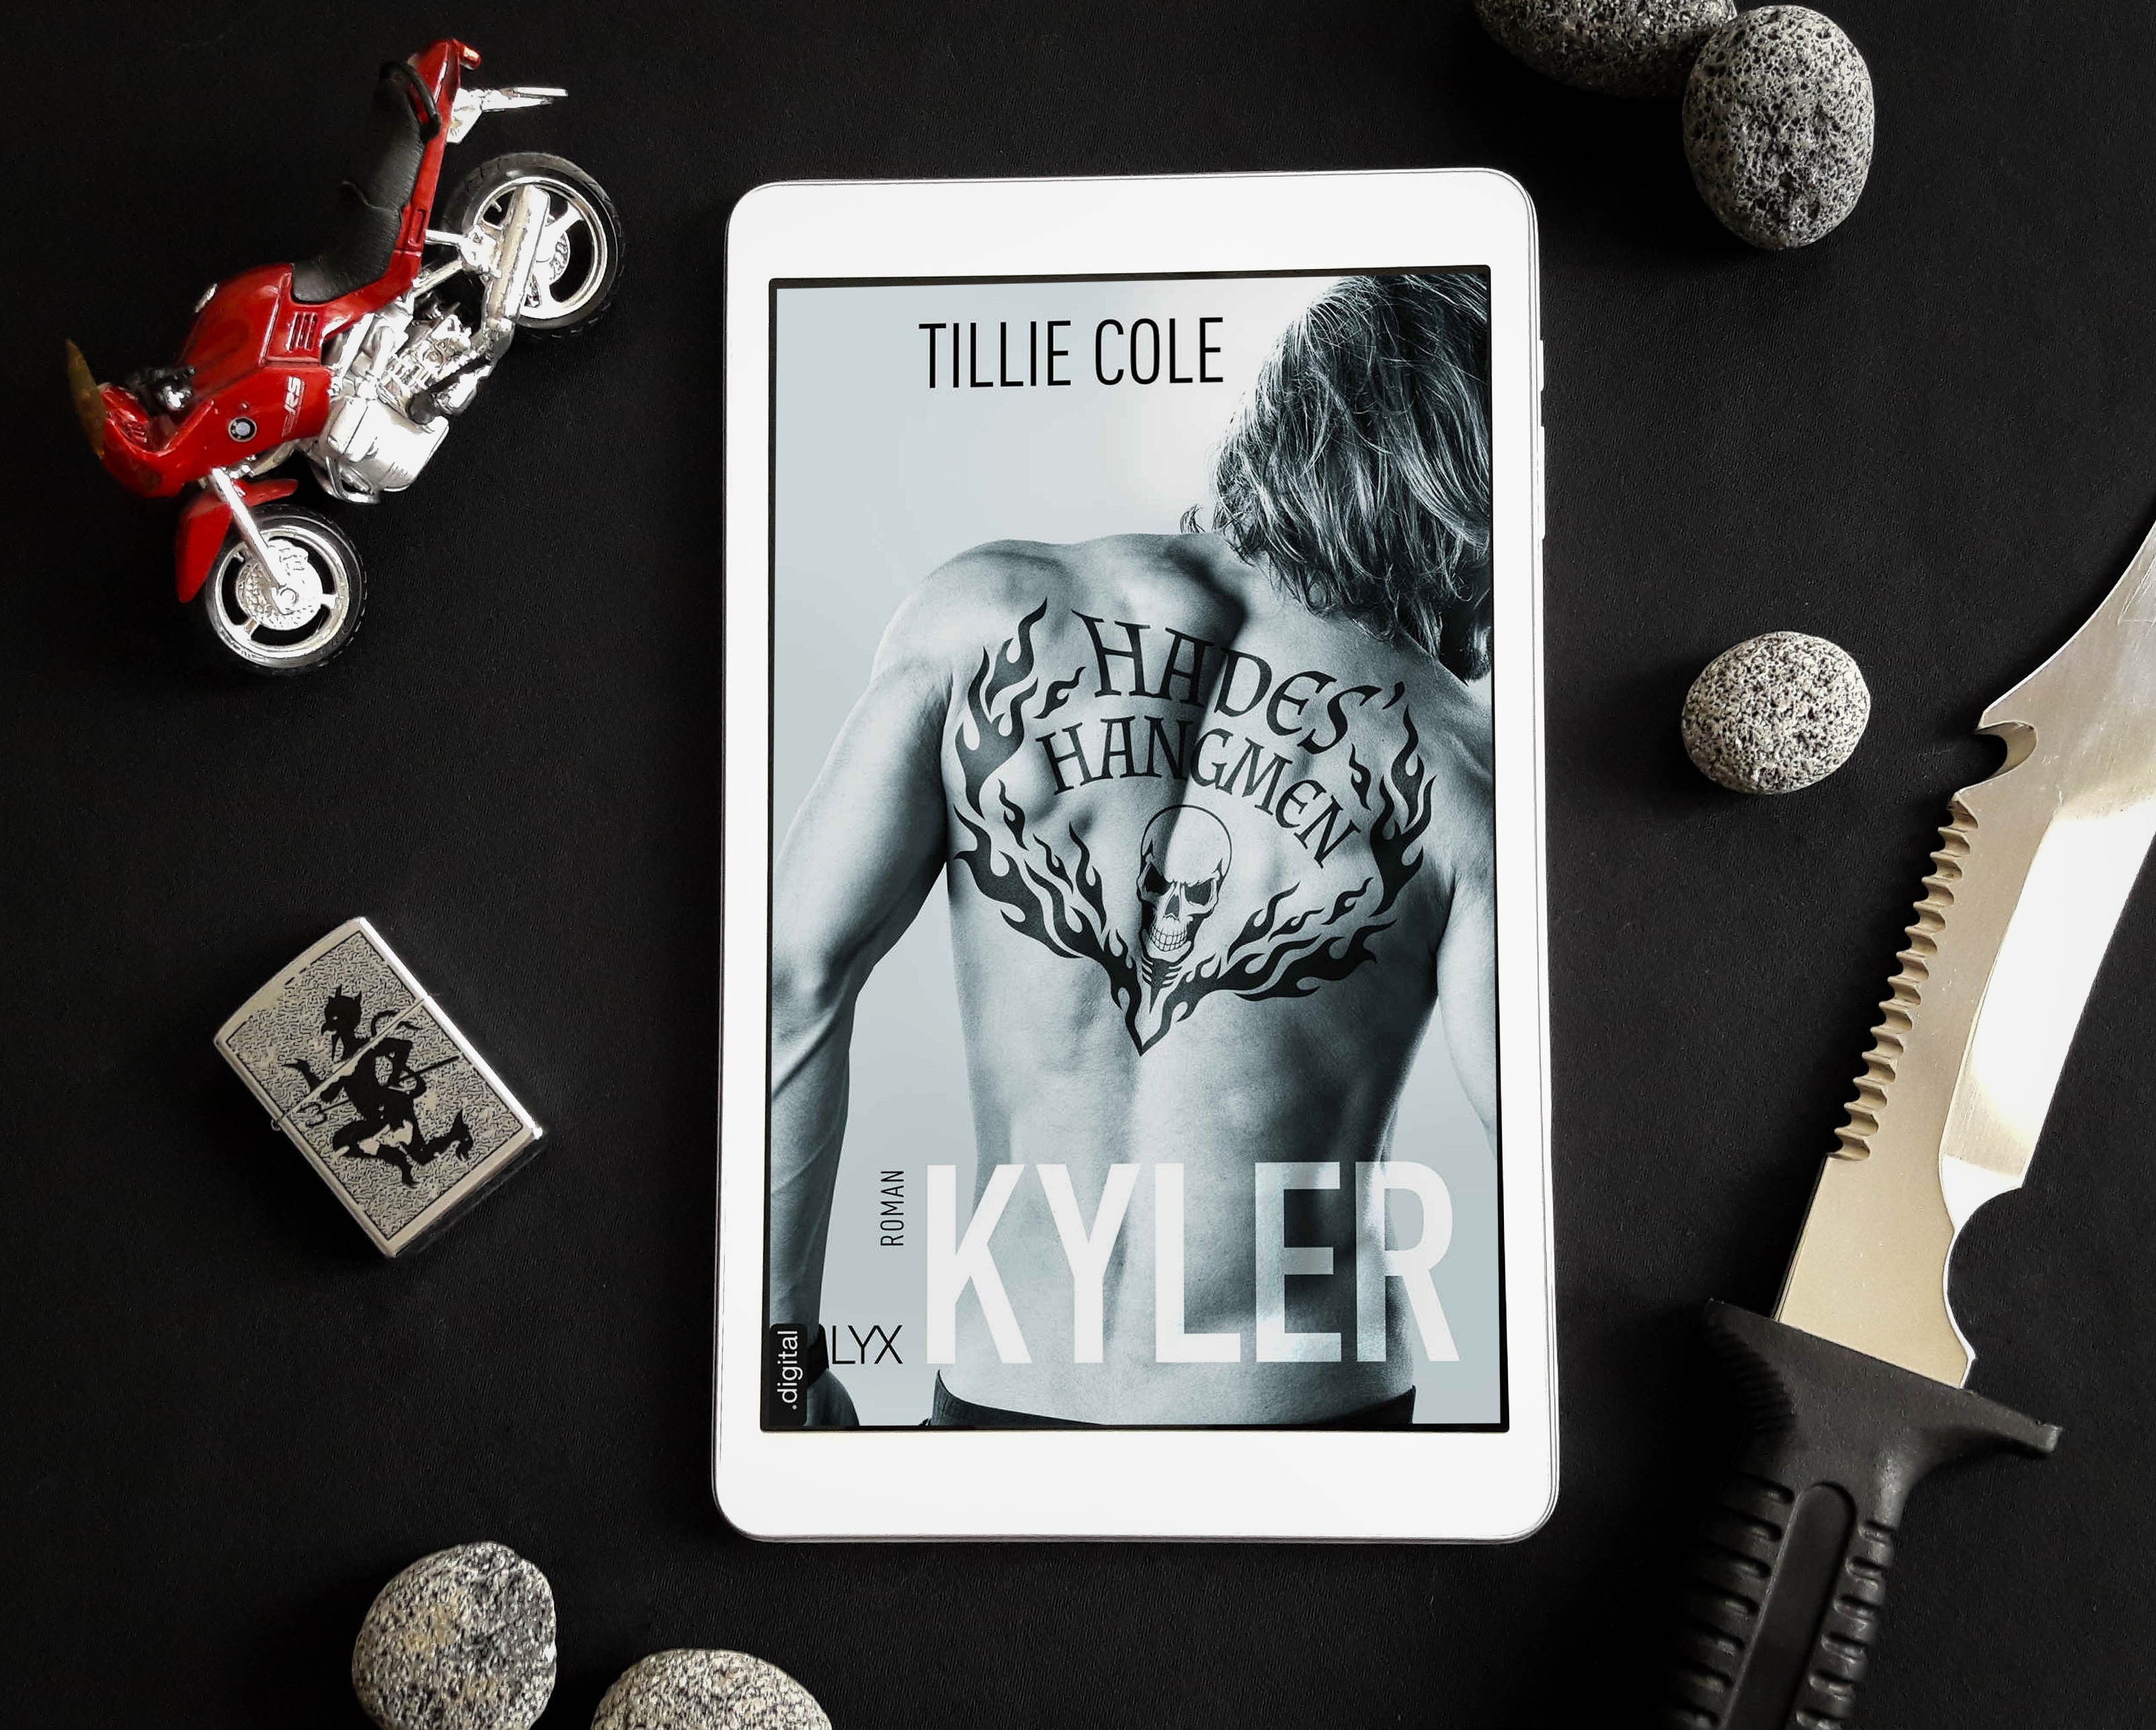 Hades' Hangmen: Kyler (Band 2) – Tillie Cole graphic